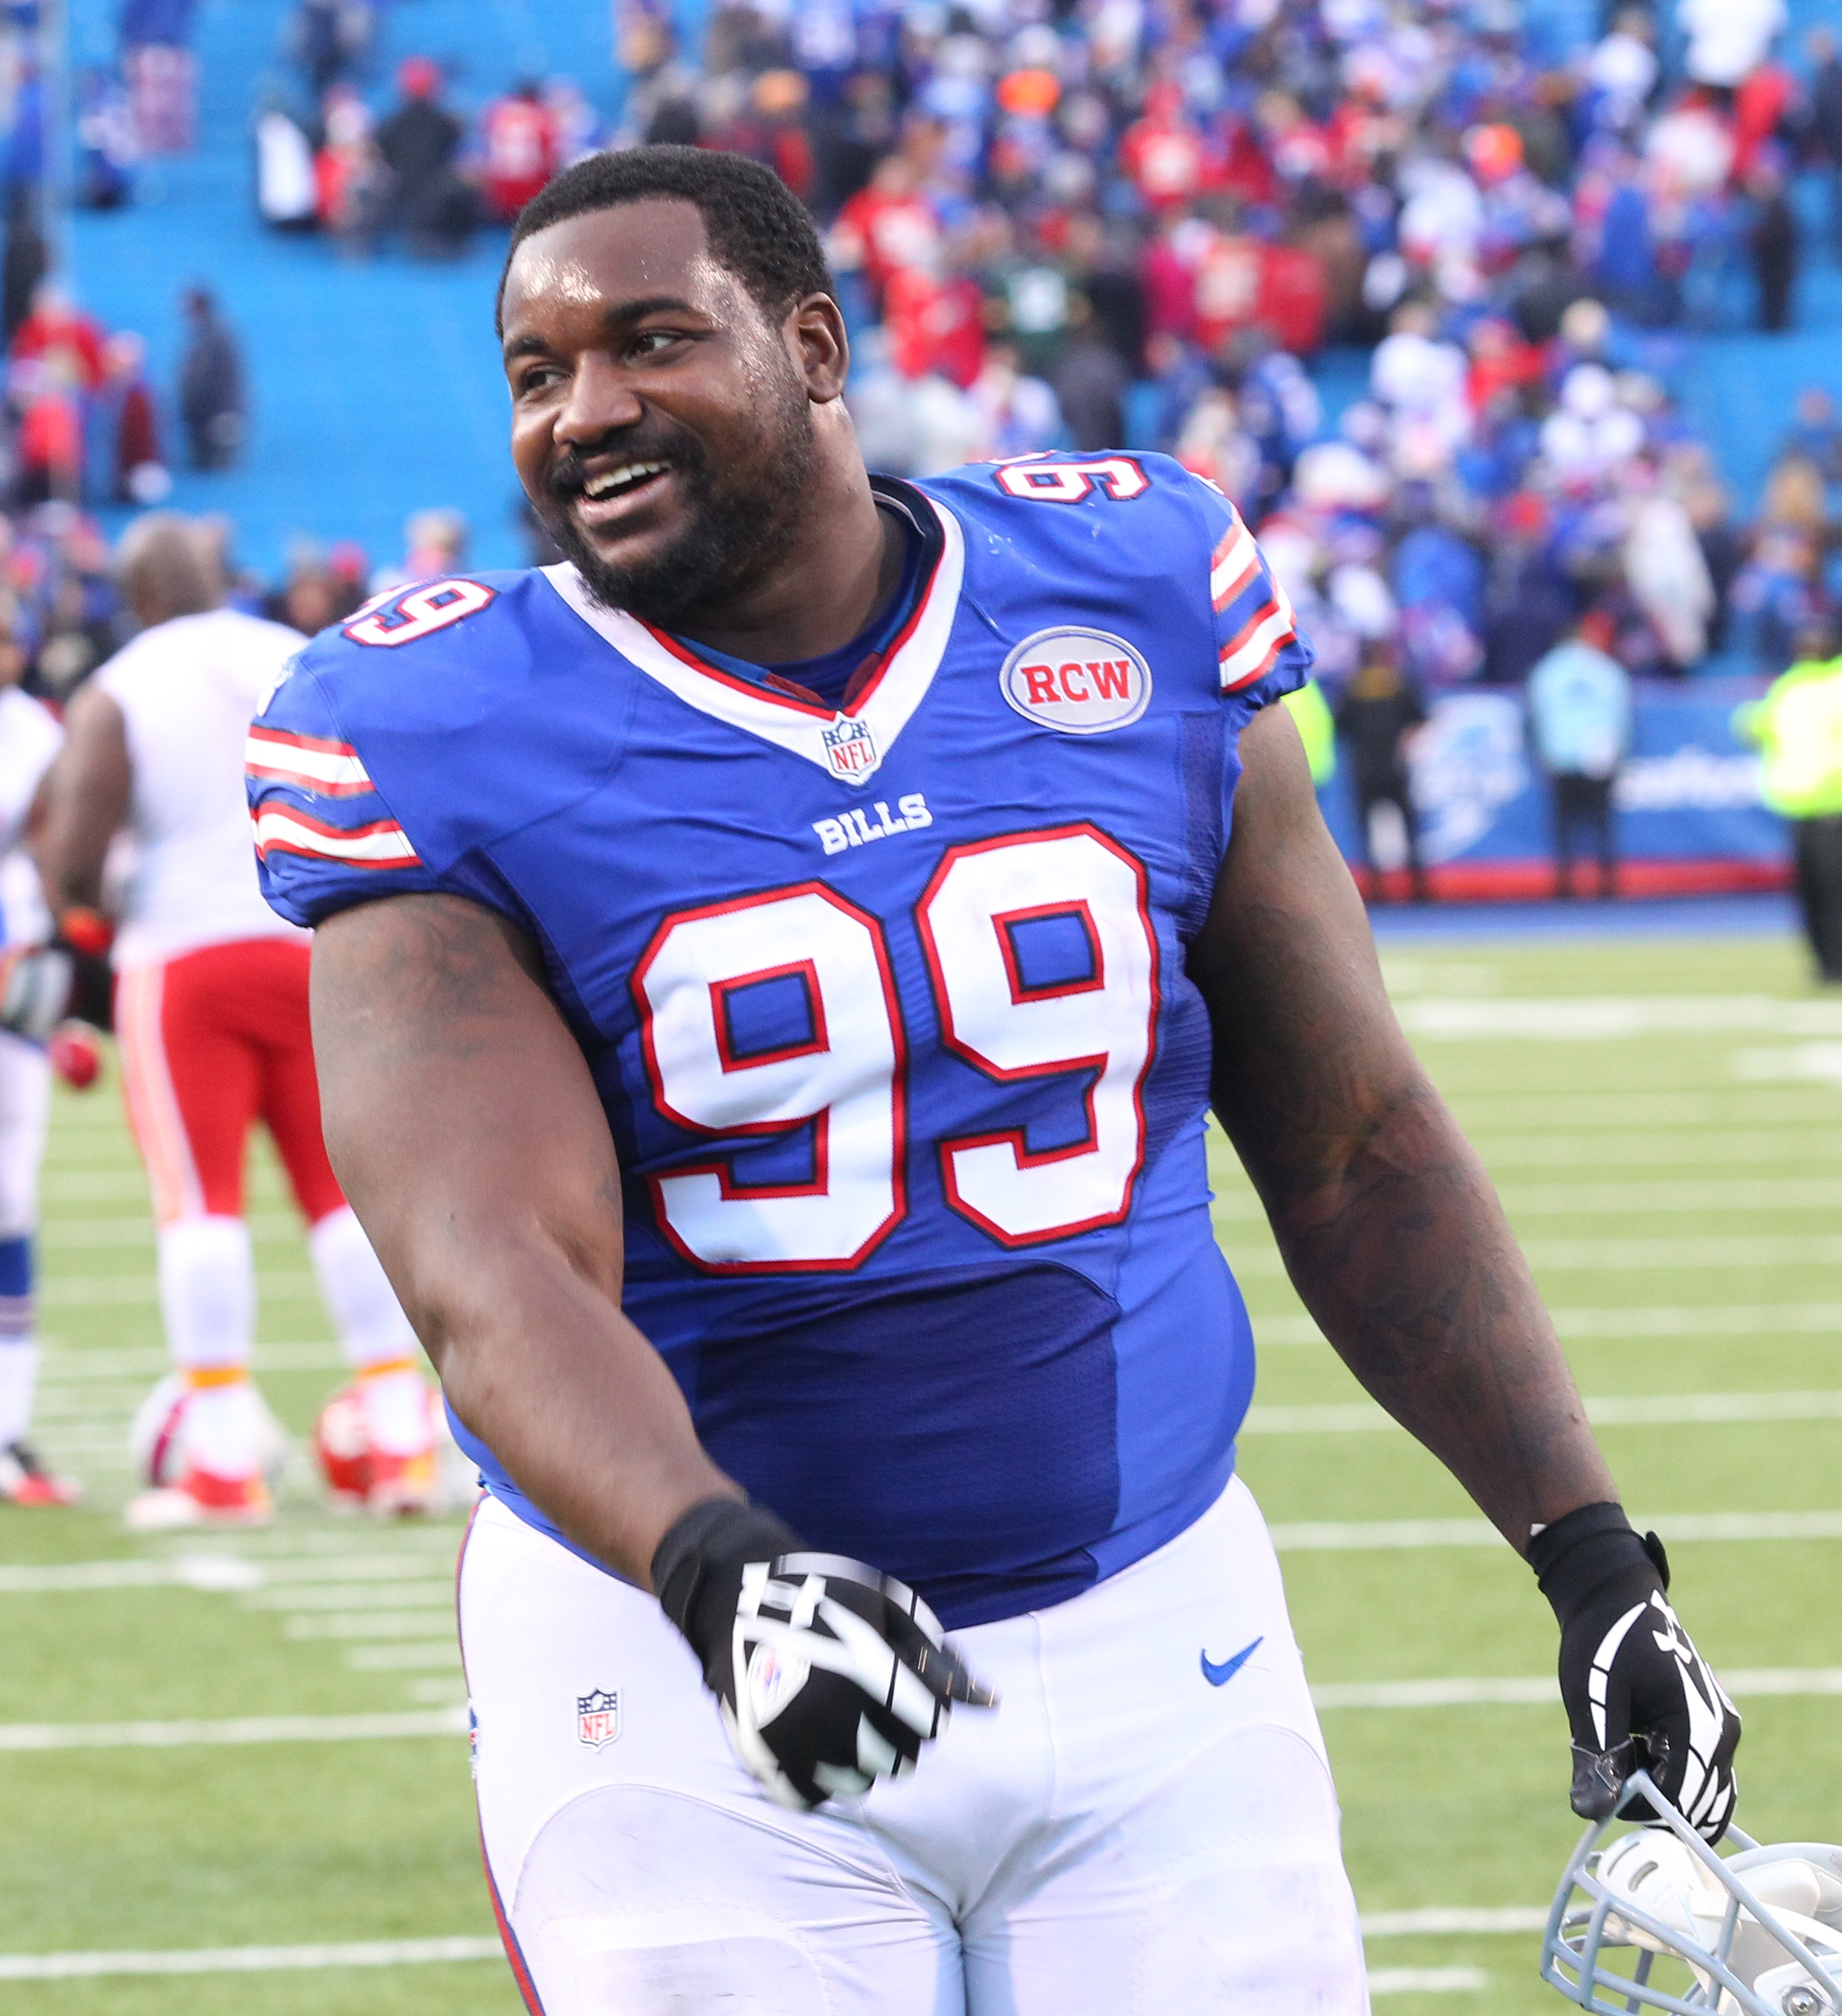 FILE - In this Nov. 9, 2014, file photo, Buffalo Bills defensive tackle Marcell Dareus (99) walks off the field after an NFL football game against the Kansas City Chiefs in Orchard Park, N.Y. Bills defensive tackle Marcell Dareus will miss the season open